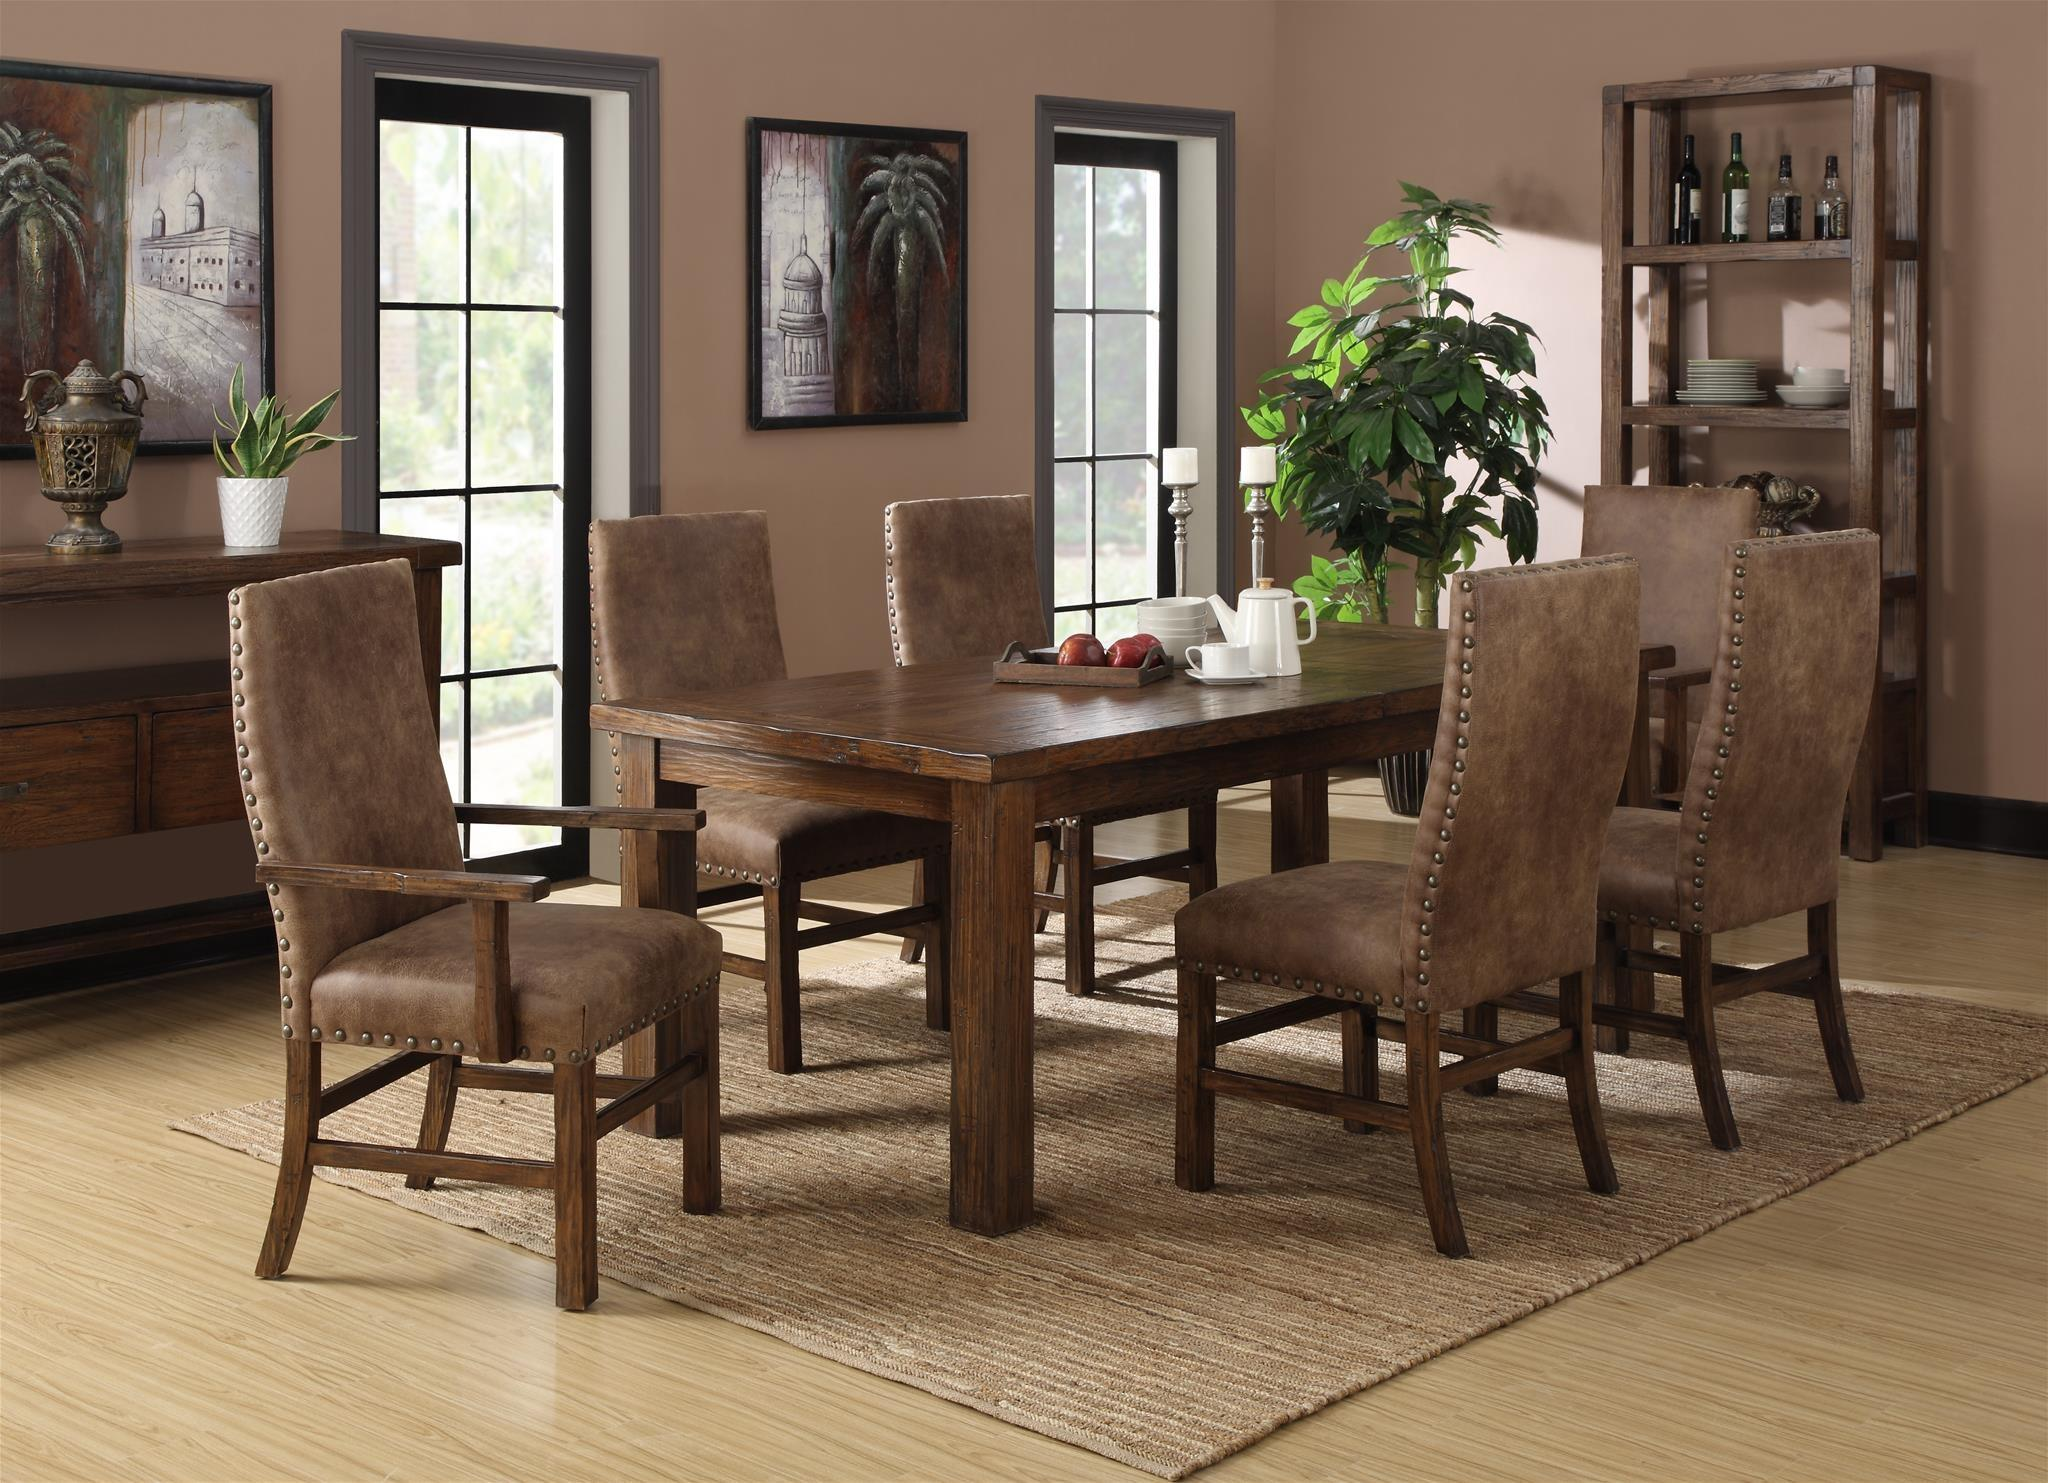 Chambers Creek Formal Dining Room Group by Emerald at Michael Alan Furniture & Design